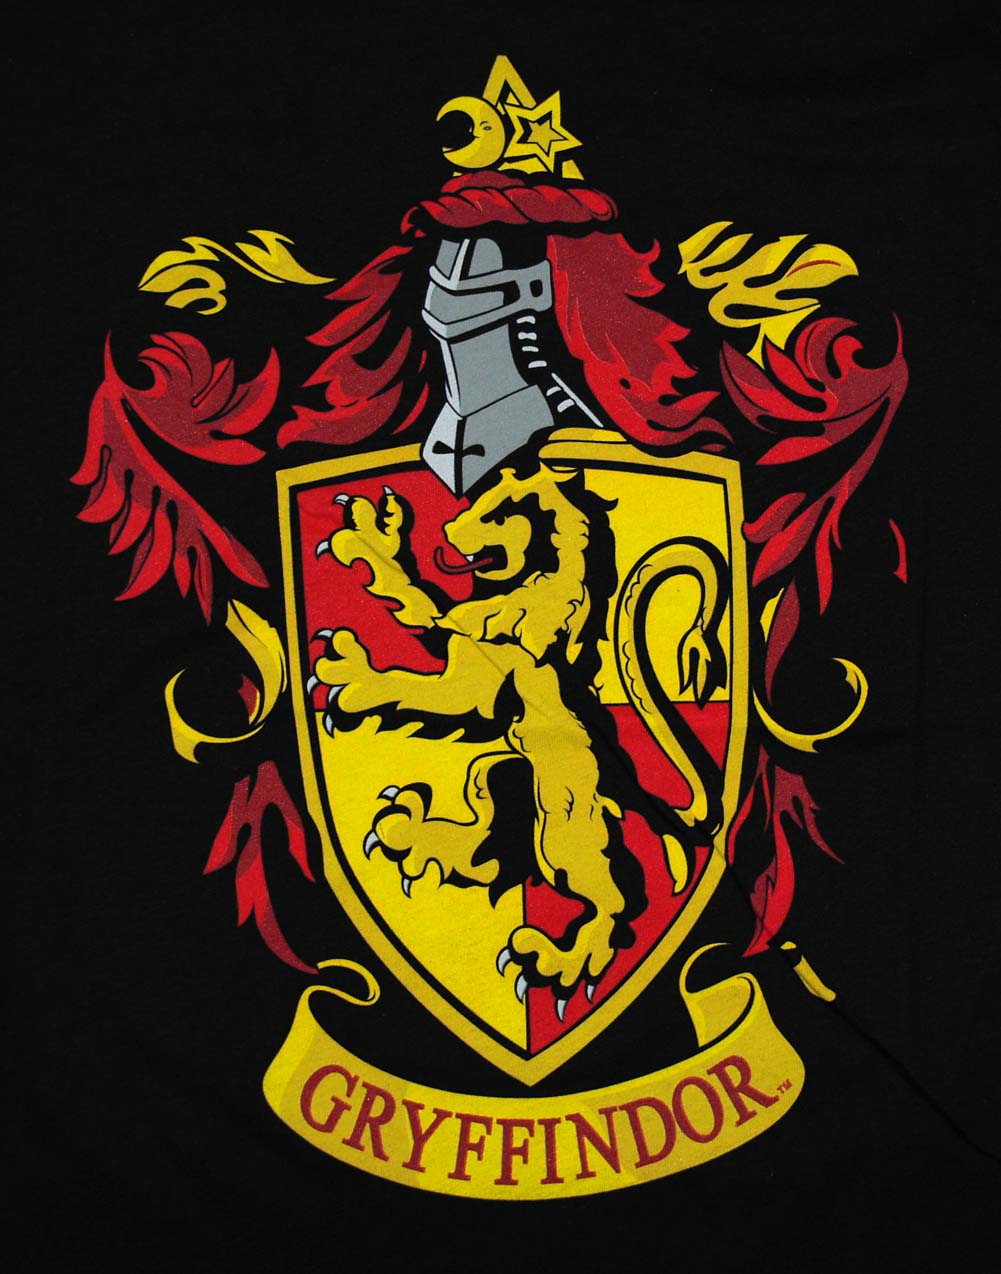 Harry Potter Gryffindor Wallpaper - WallpaperSafari